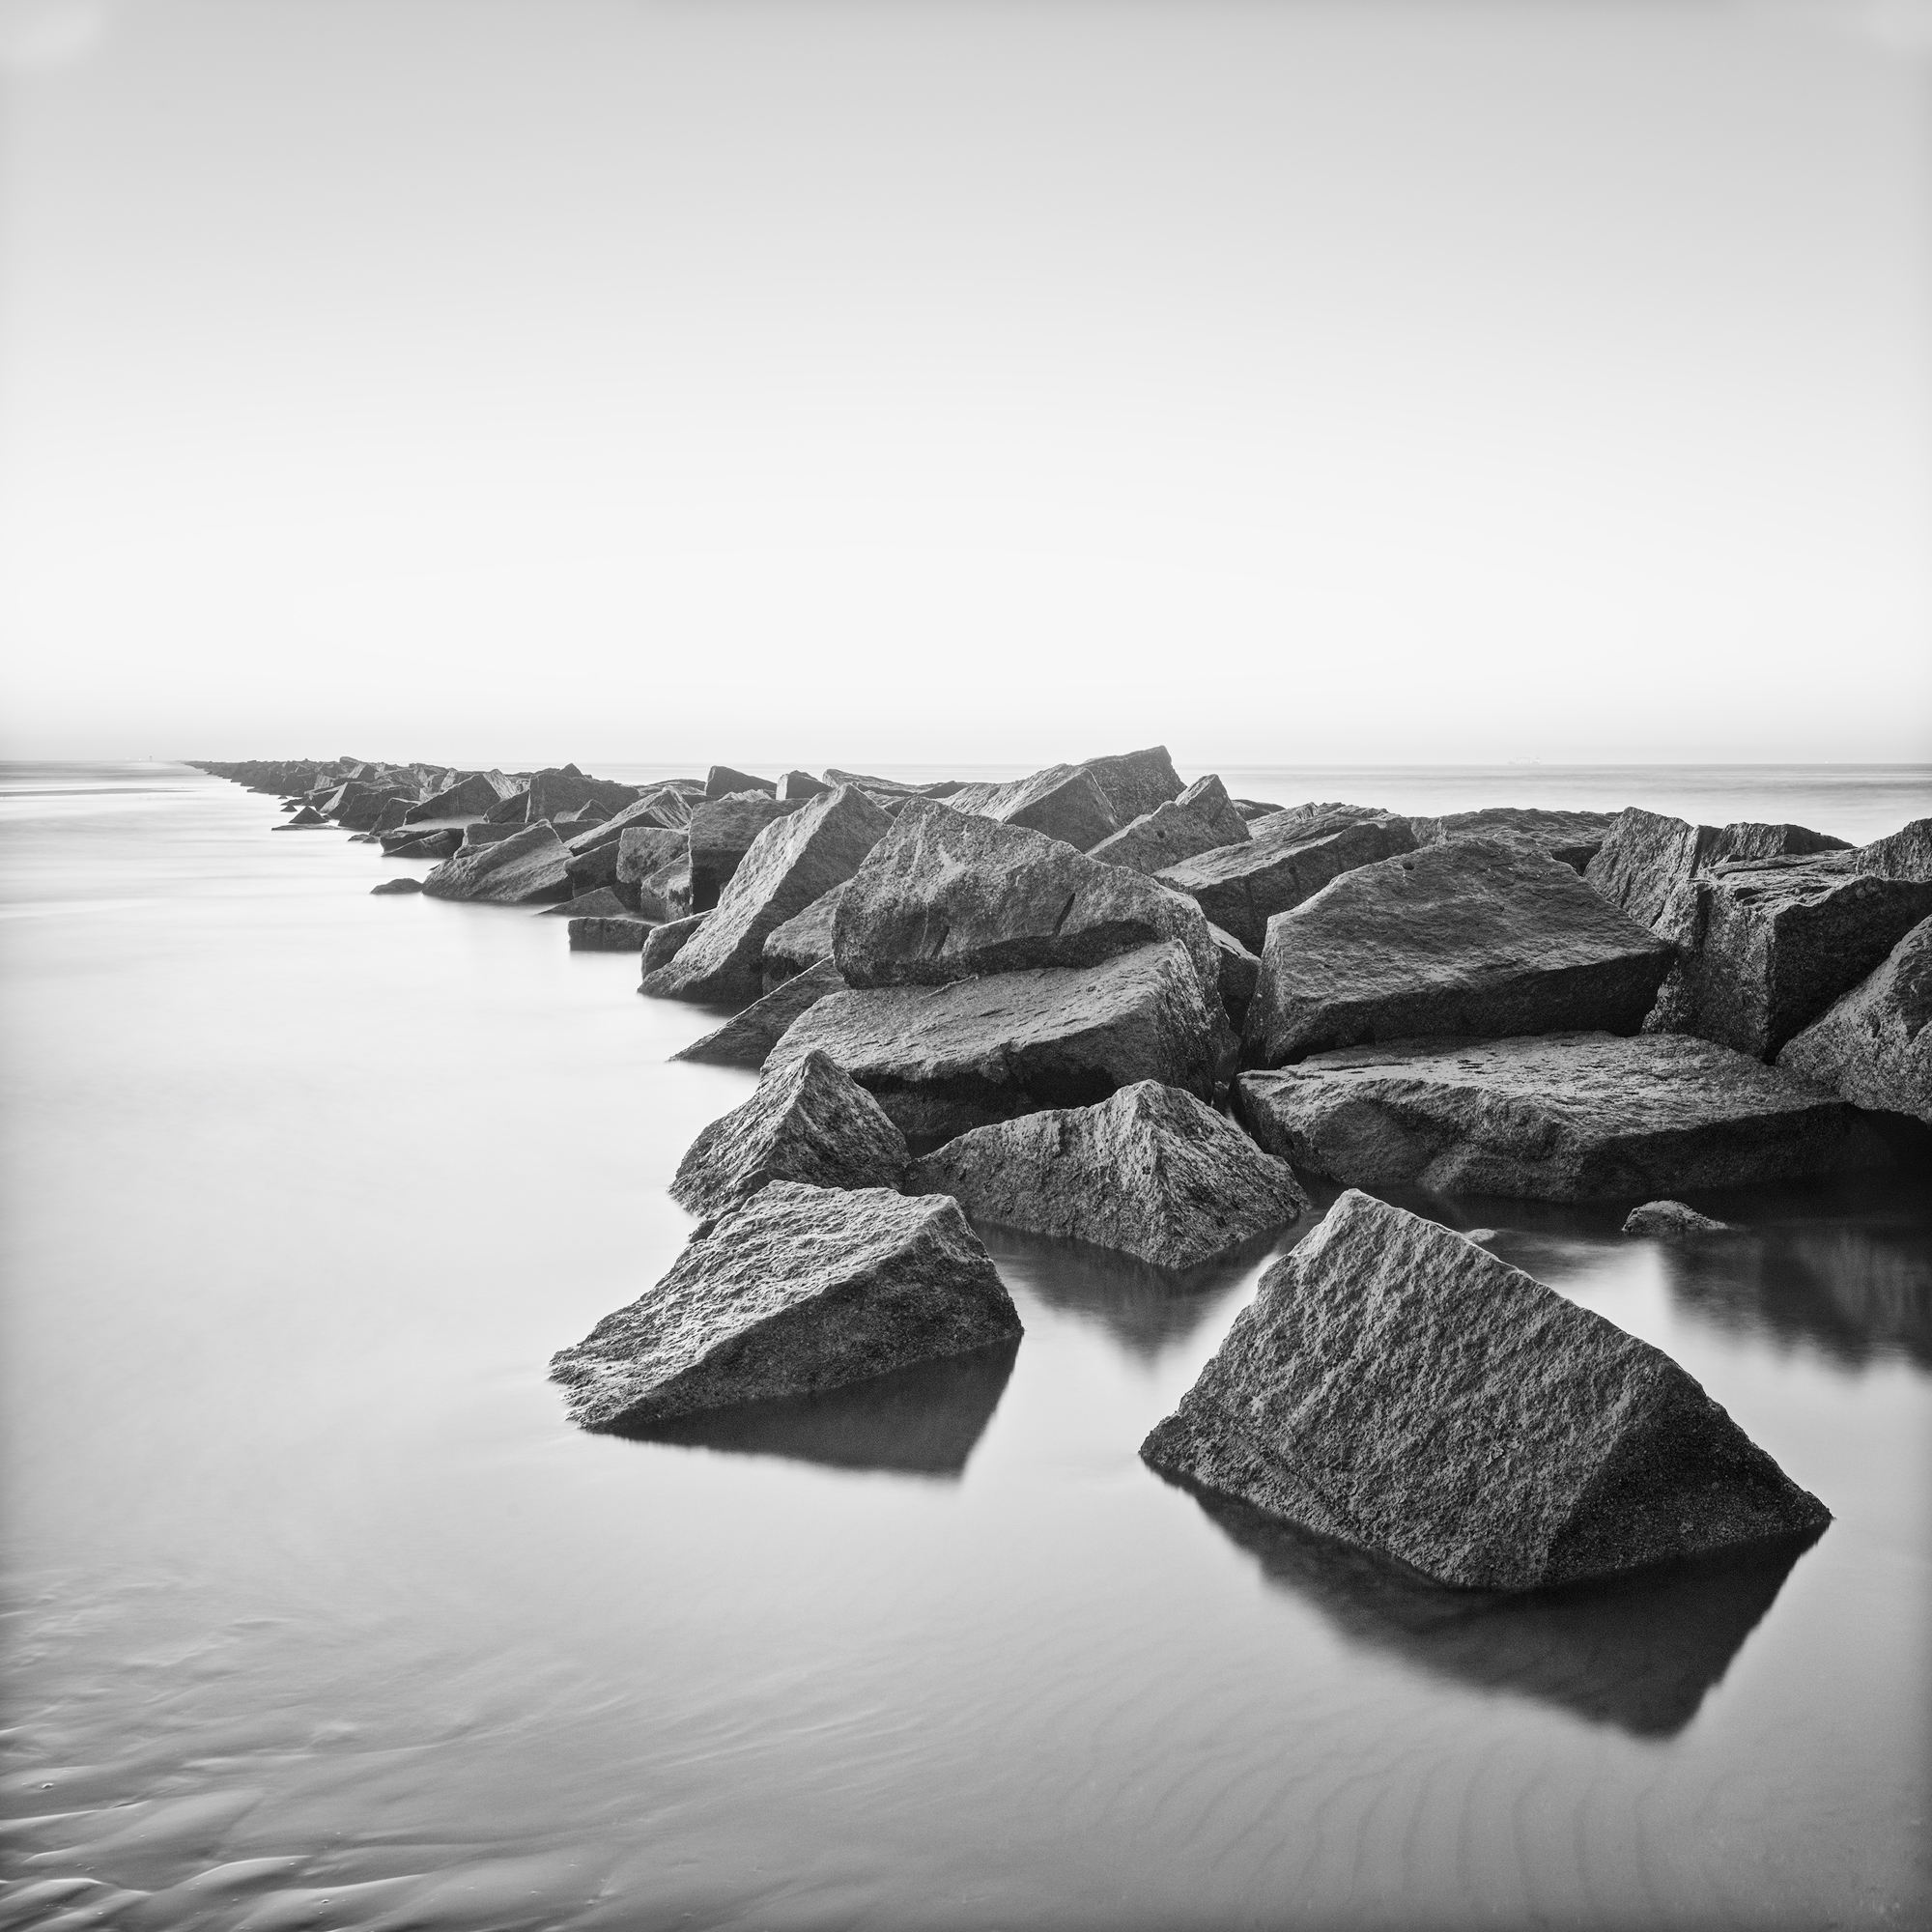 South Jetty